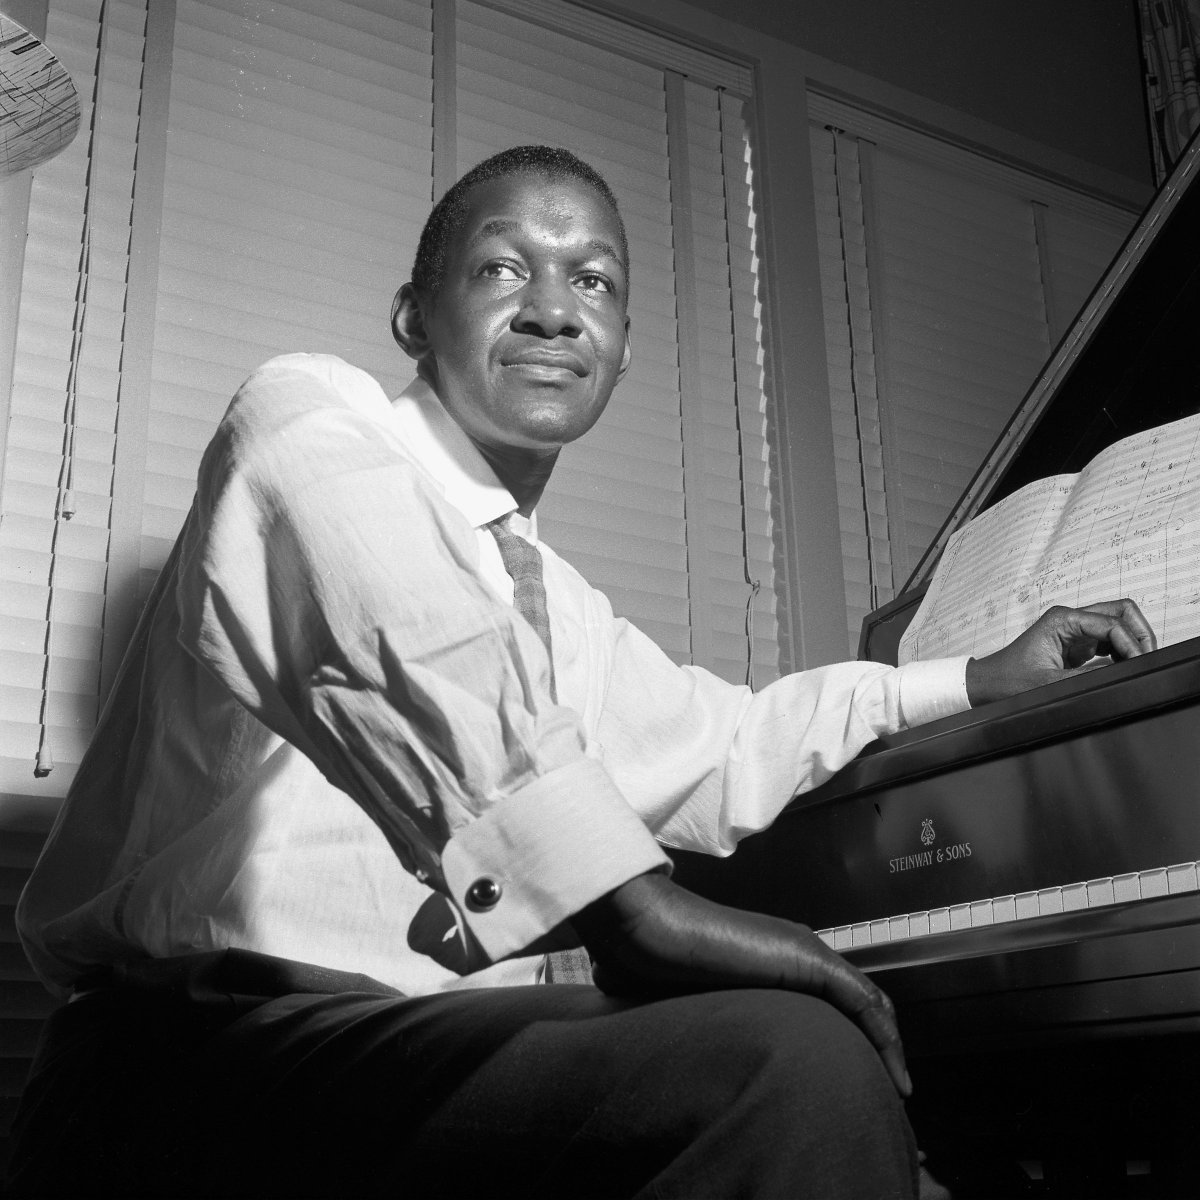 2019 marks the centennial of the brilliant pianist & composer #HerbieNichols whose Blue Note albums are underrated classics of our catalog. Hear 'Applejackin'' on #TheBlueNoteMonthly https://t.co/IMtyTx8h1C  Explore his 'Complete Blue Note Recordings'  https://t.co/p2HmaxEQue